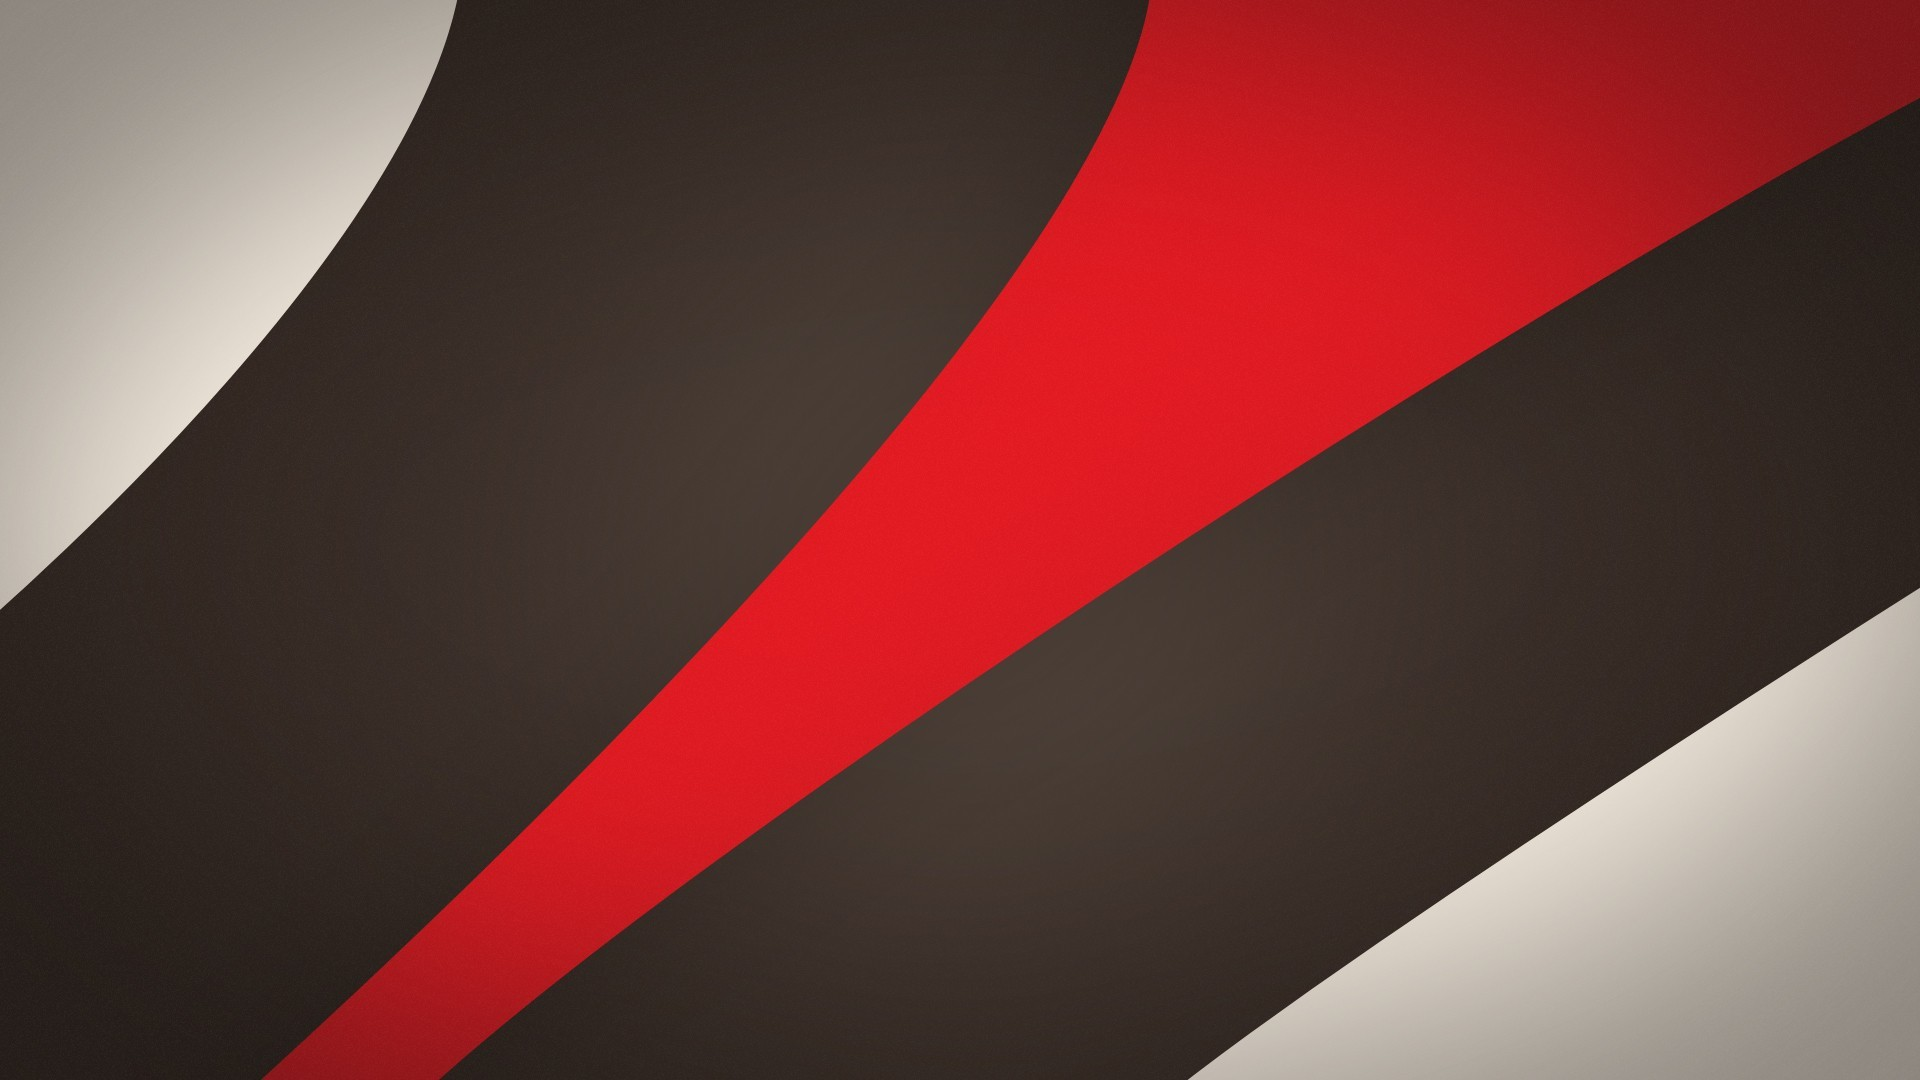 abstract_red6